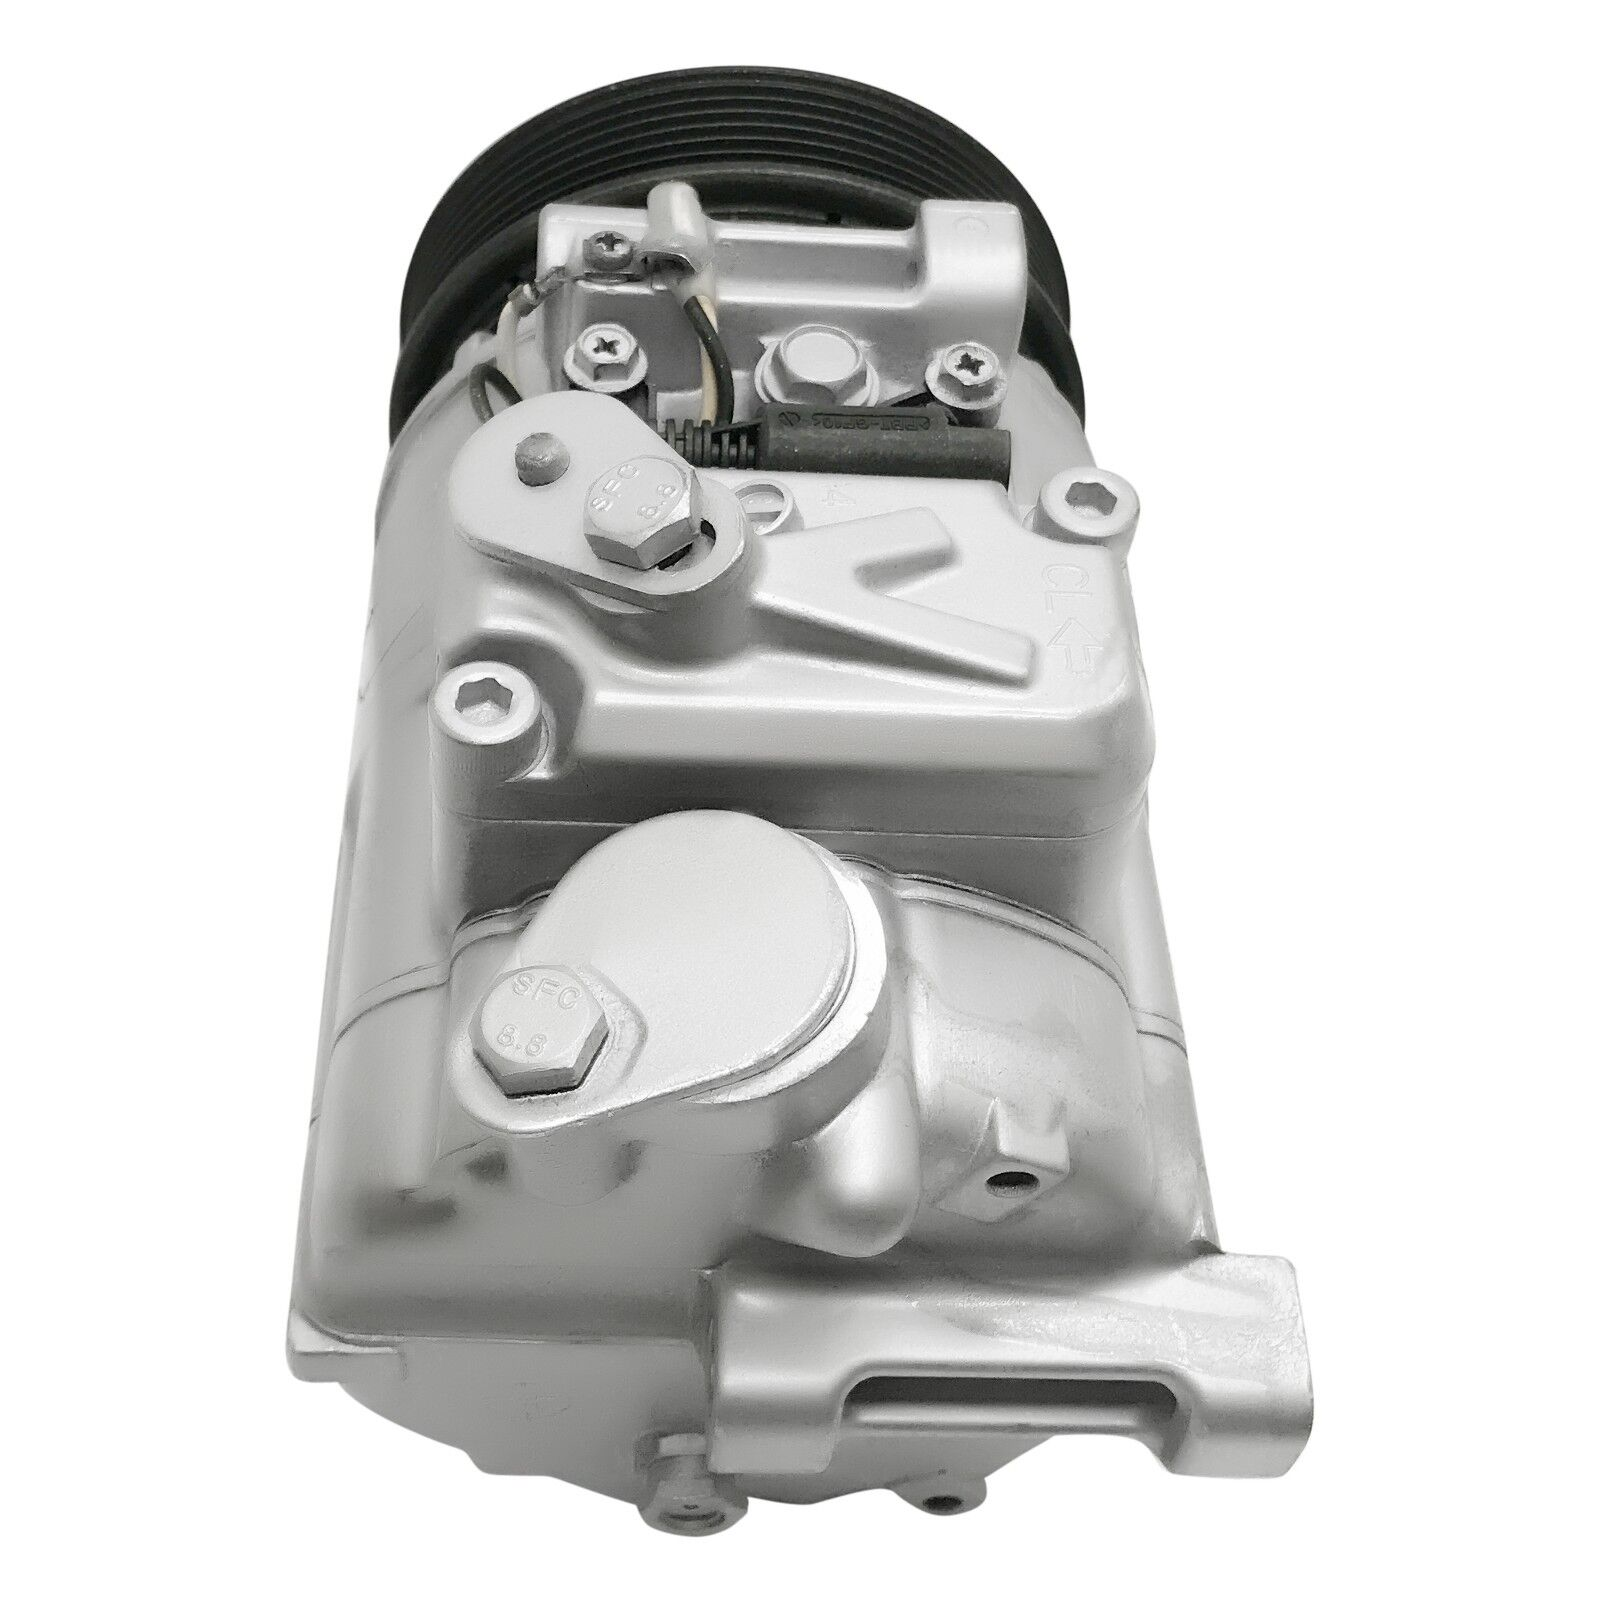 p remanufactured land global rover content s supercharger res ebay landrover inflow engines range cancel inflowcomponent